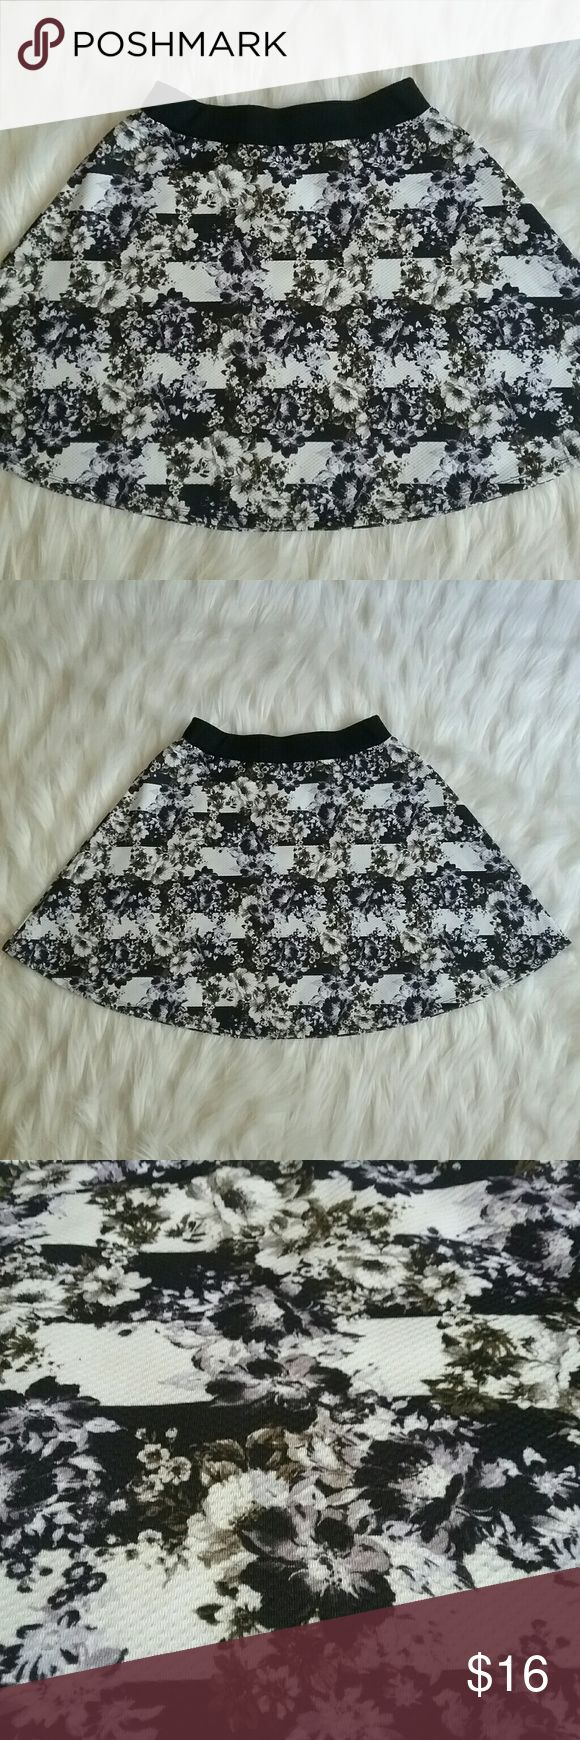 Xhilaration floral twirl skirt Great condition. Stripes & flowers. Size Medium. Subtle purple & green colors in the flowers. Very pretty.  Self: 94% polyester 8% spandex Contrast: 98% cotton 2% spandex Laying flat across the top: 13 inches (elastic..will stretch) Xhilaration Skirts